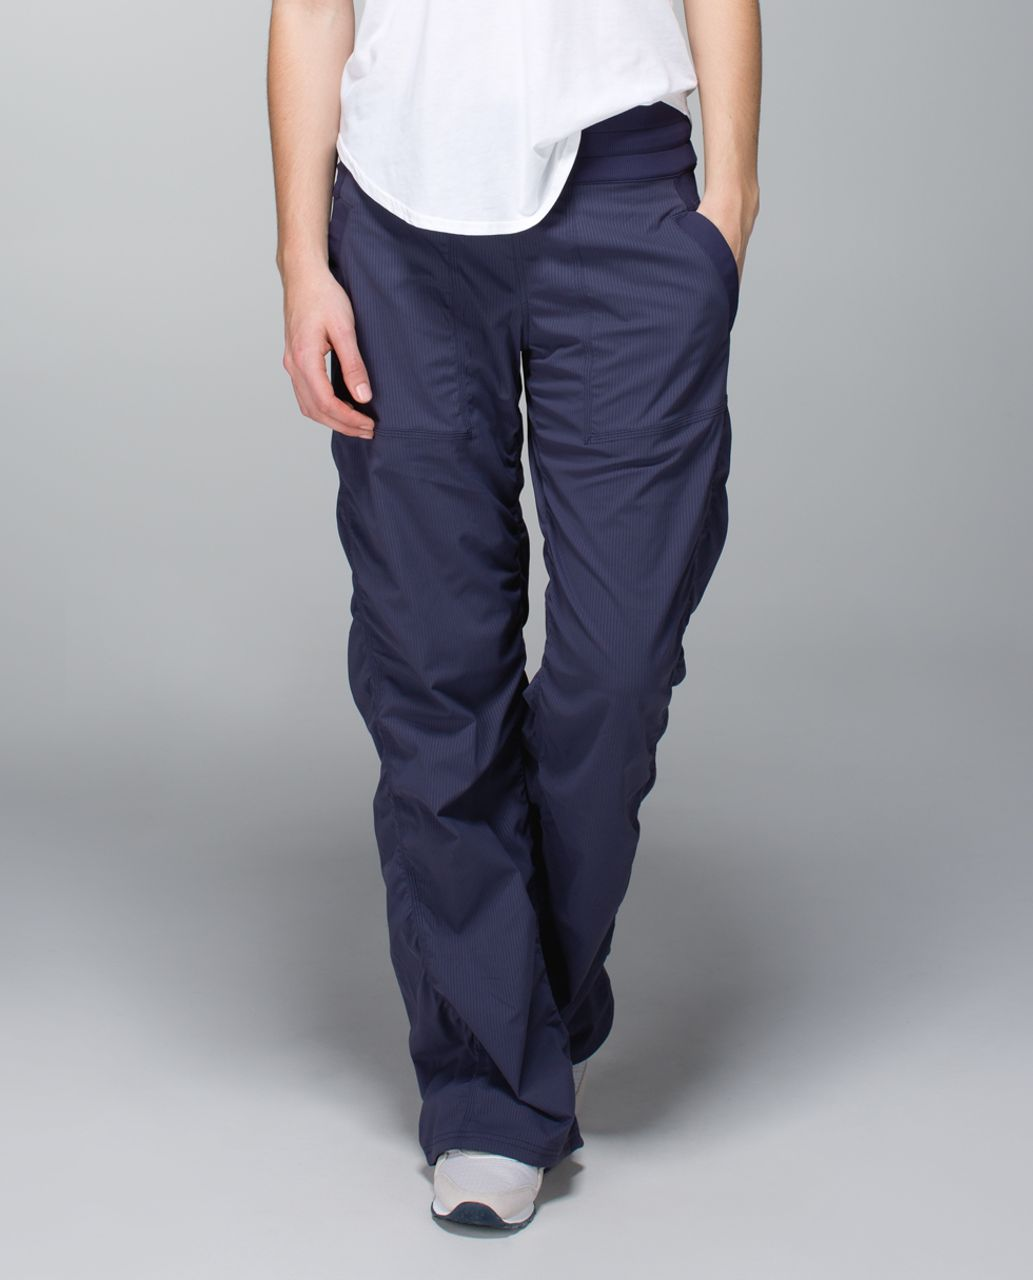 bb49866763 Lululemon Studio Pant II *No Liner (Regular) - Cadet Blue - lulu fanatics